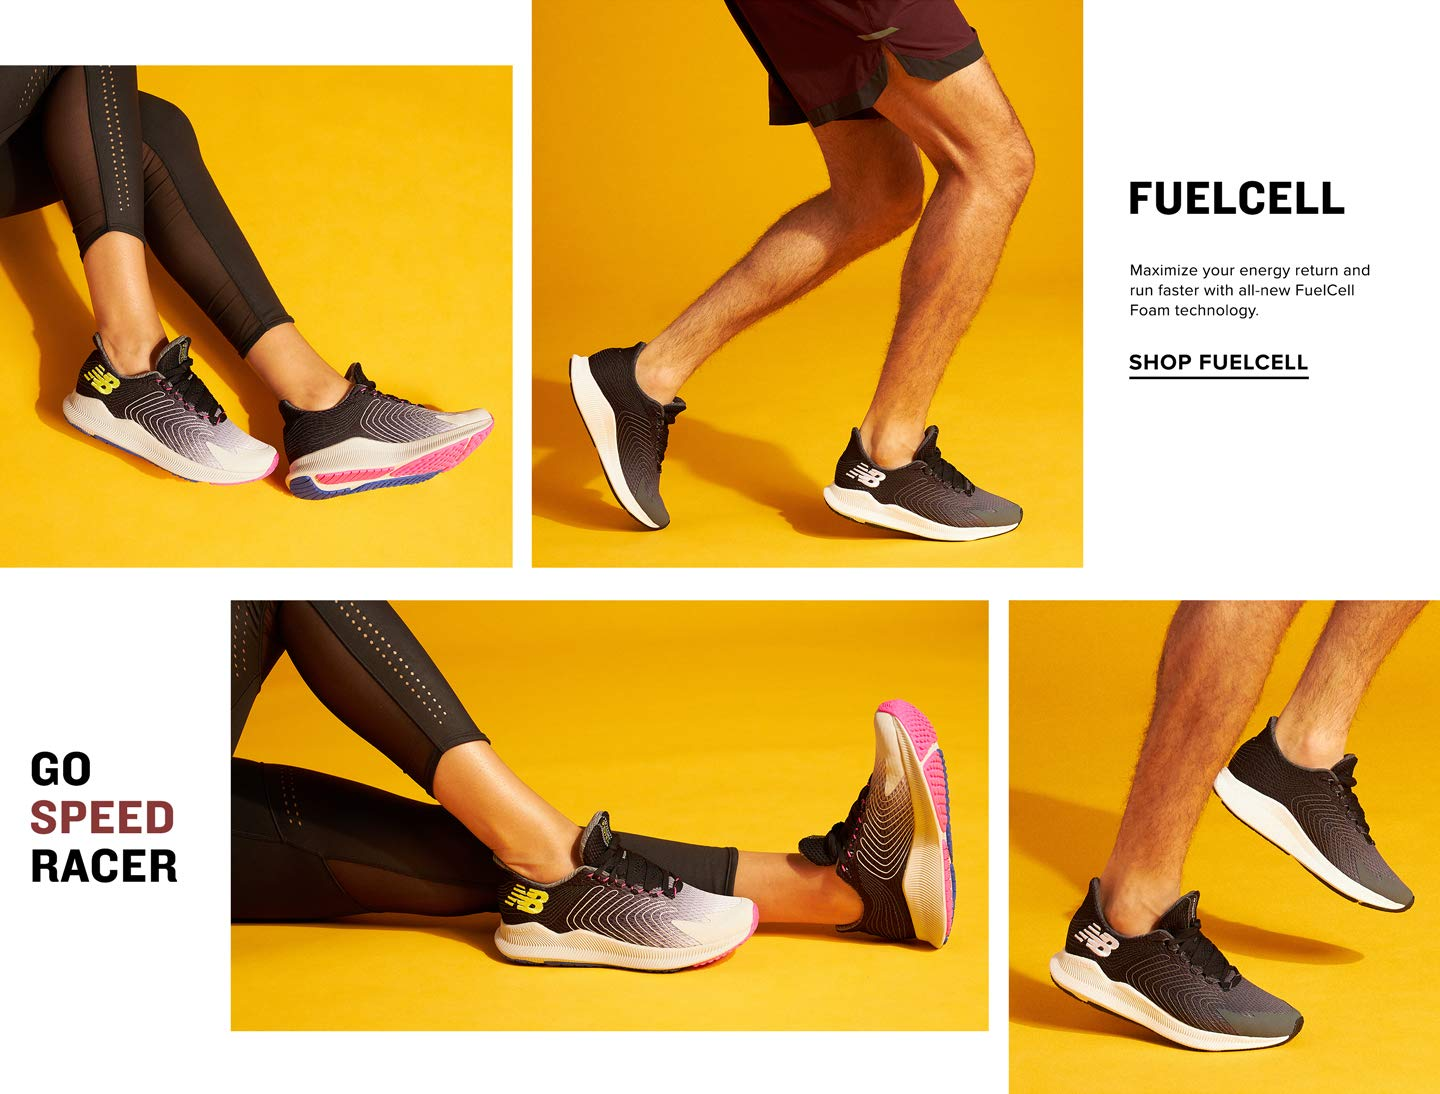 Maximize your energy return and run faster with all-new FuelCell Foam Technology. Shop Fuelcell